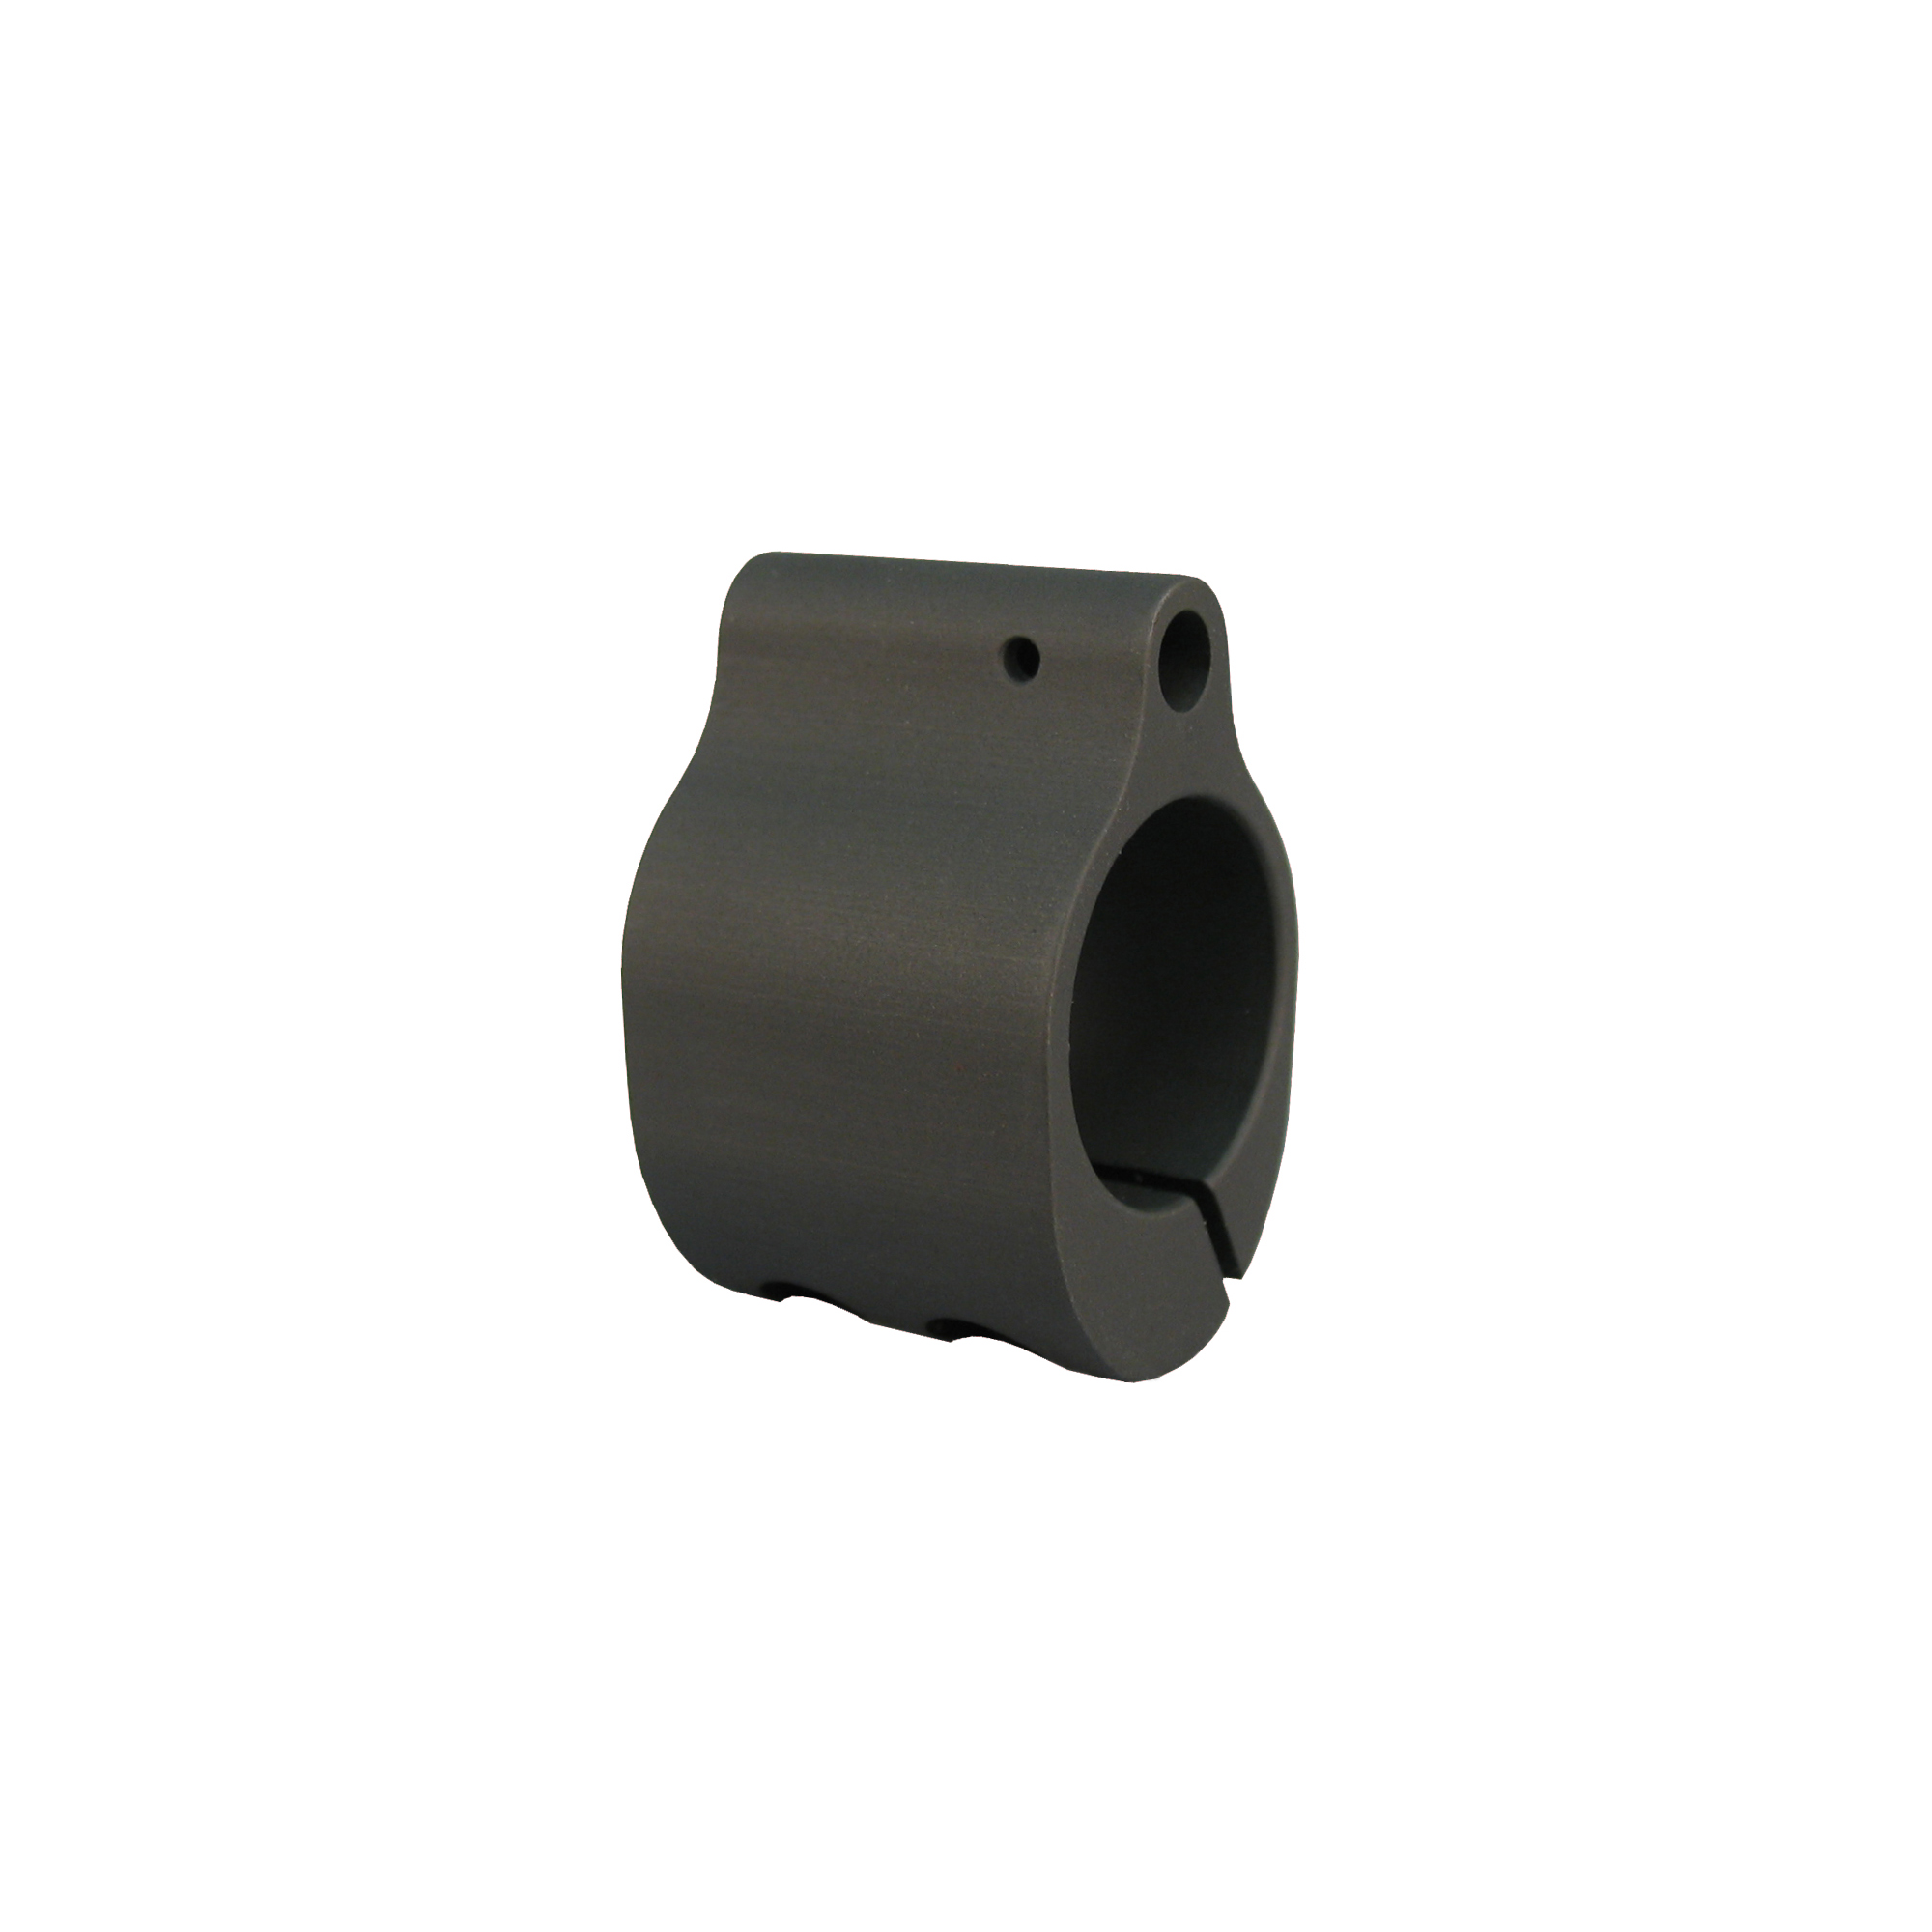 """This gas block replaces your existing front sight to provide a simple"""" low profile design that can be used to mount a rifle length forearm to a carbine length barrel. It is mounted by the use of two clamping screws."""